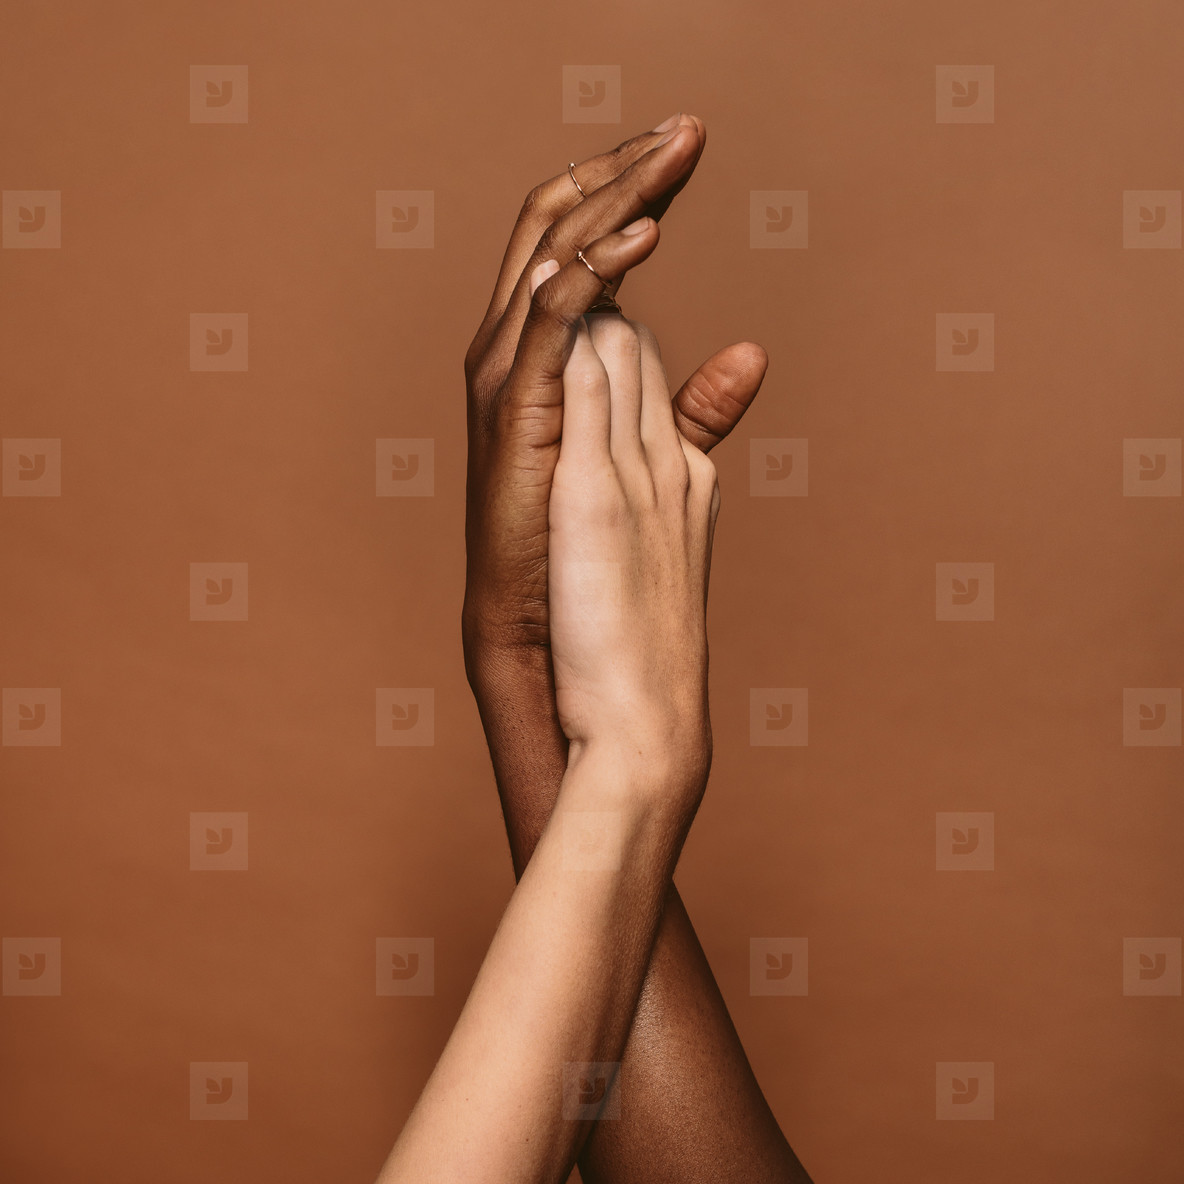 Two female hands together